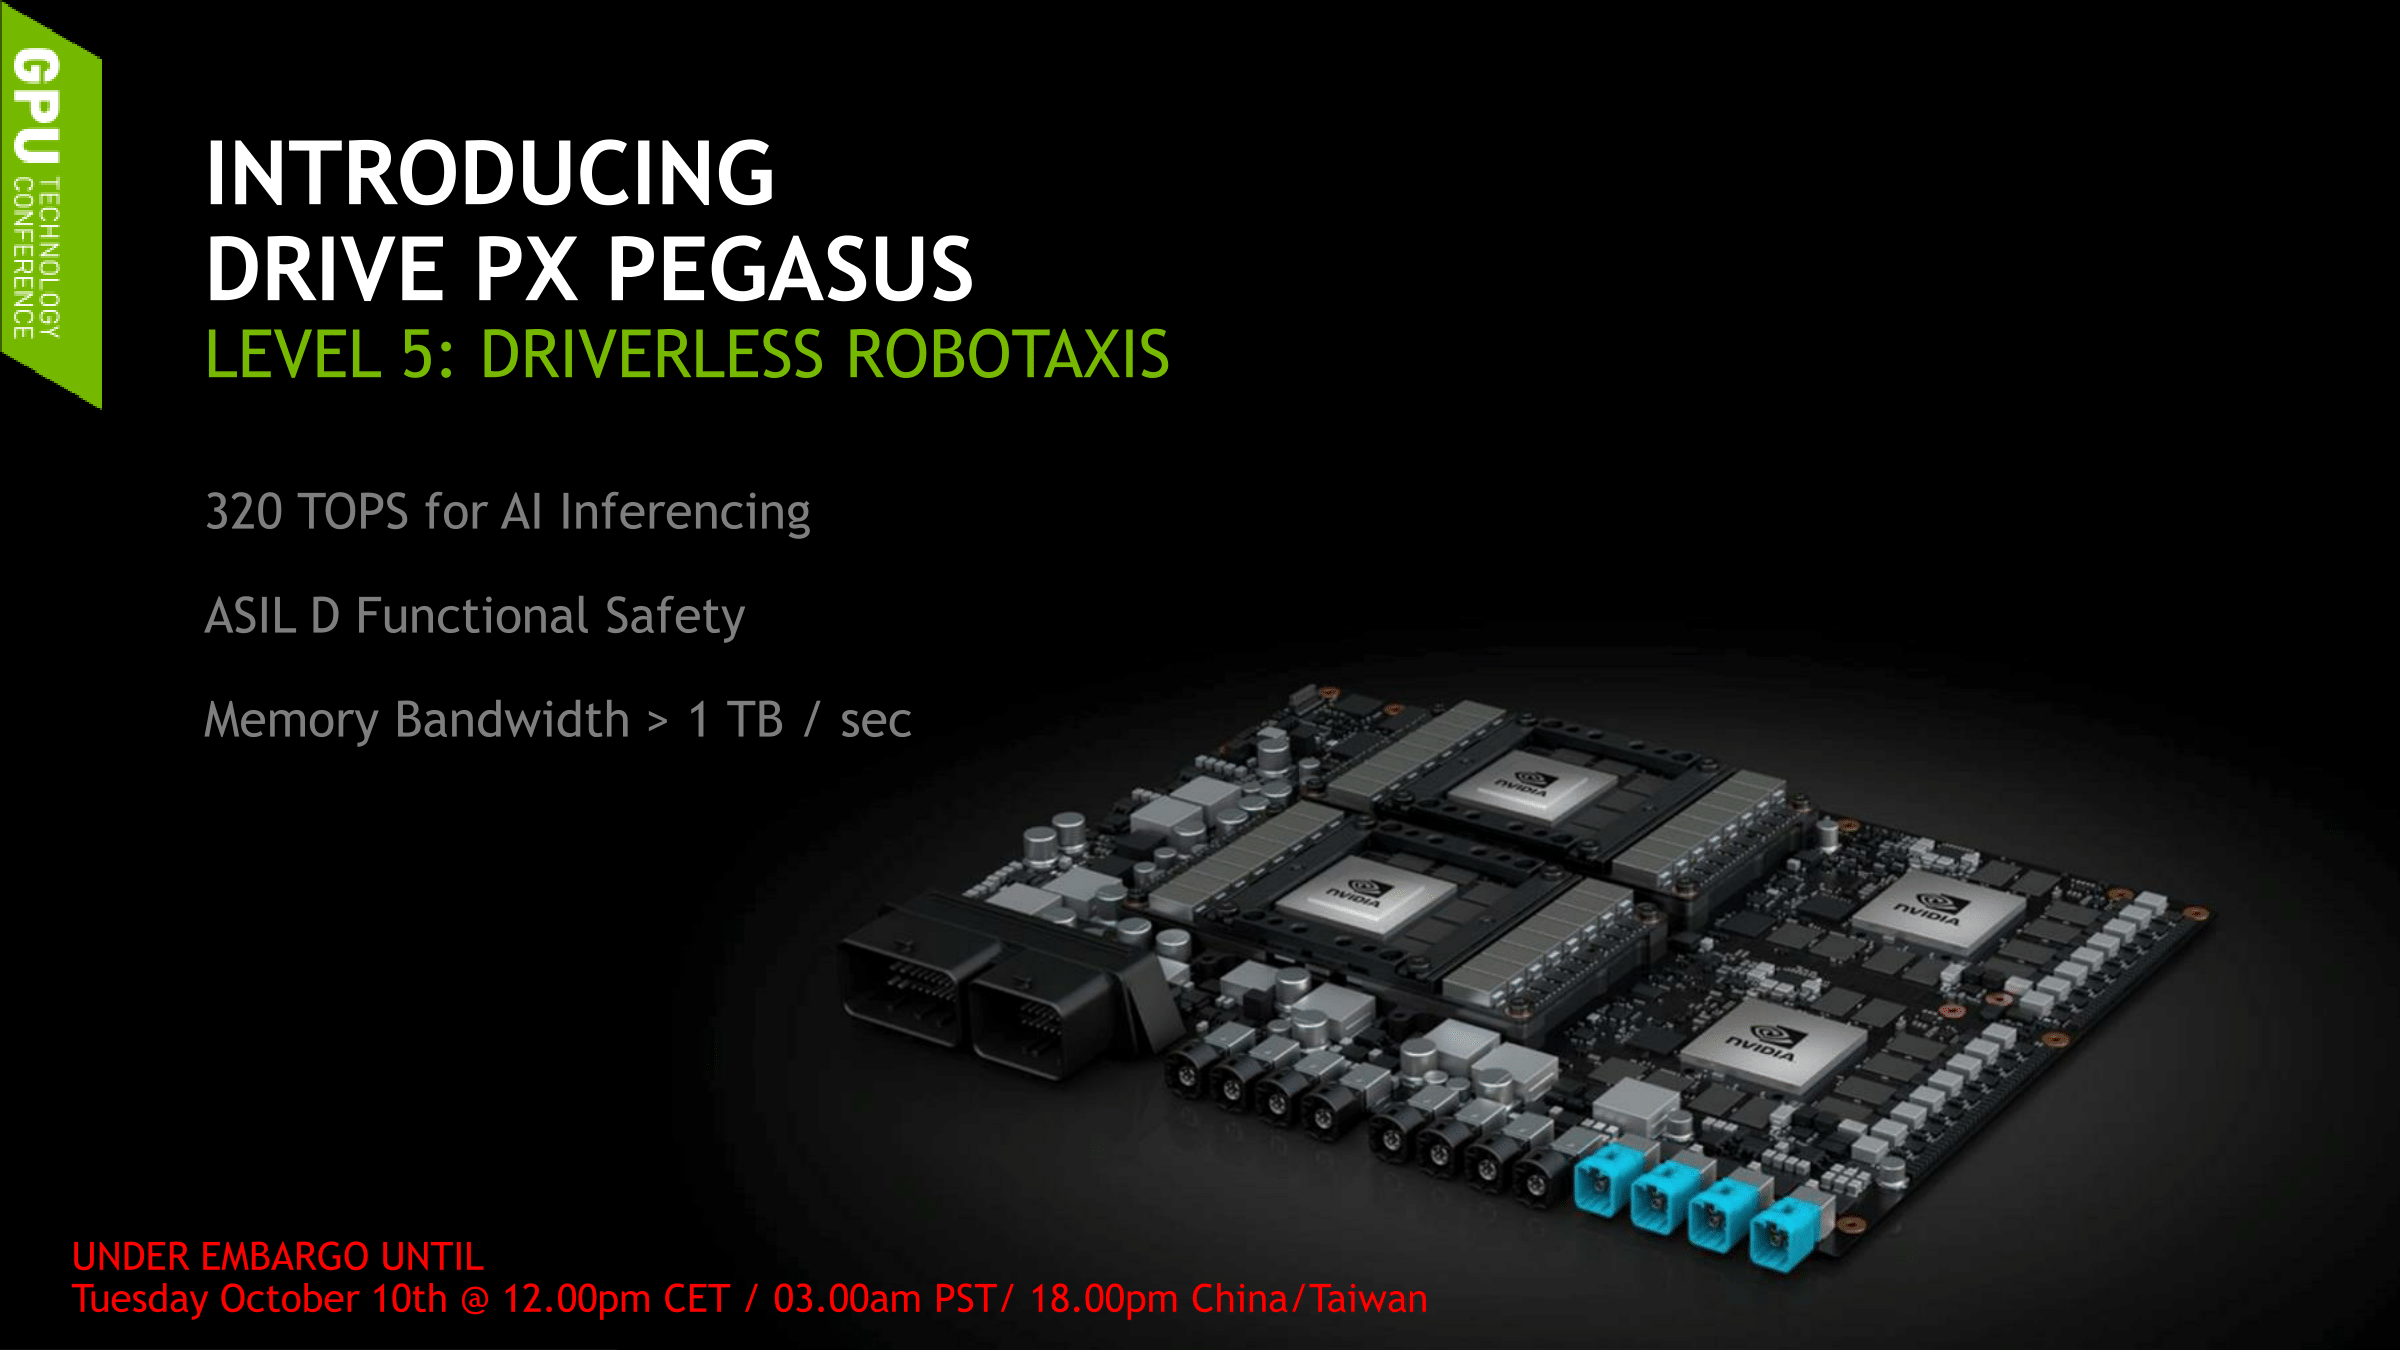 NVIDIA Unveils Drive PX Pegasus: Made To Power Fully Autonomous Vehicles